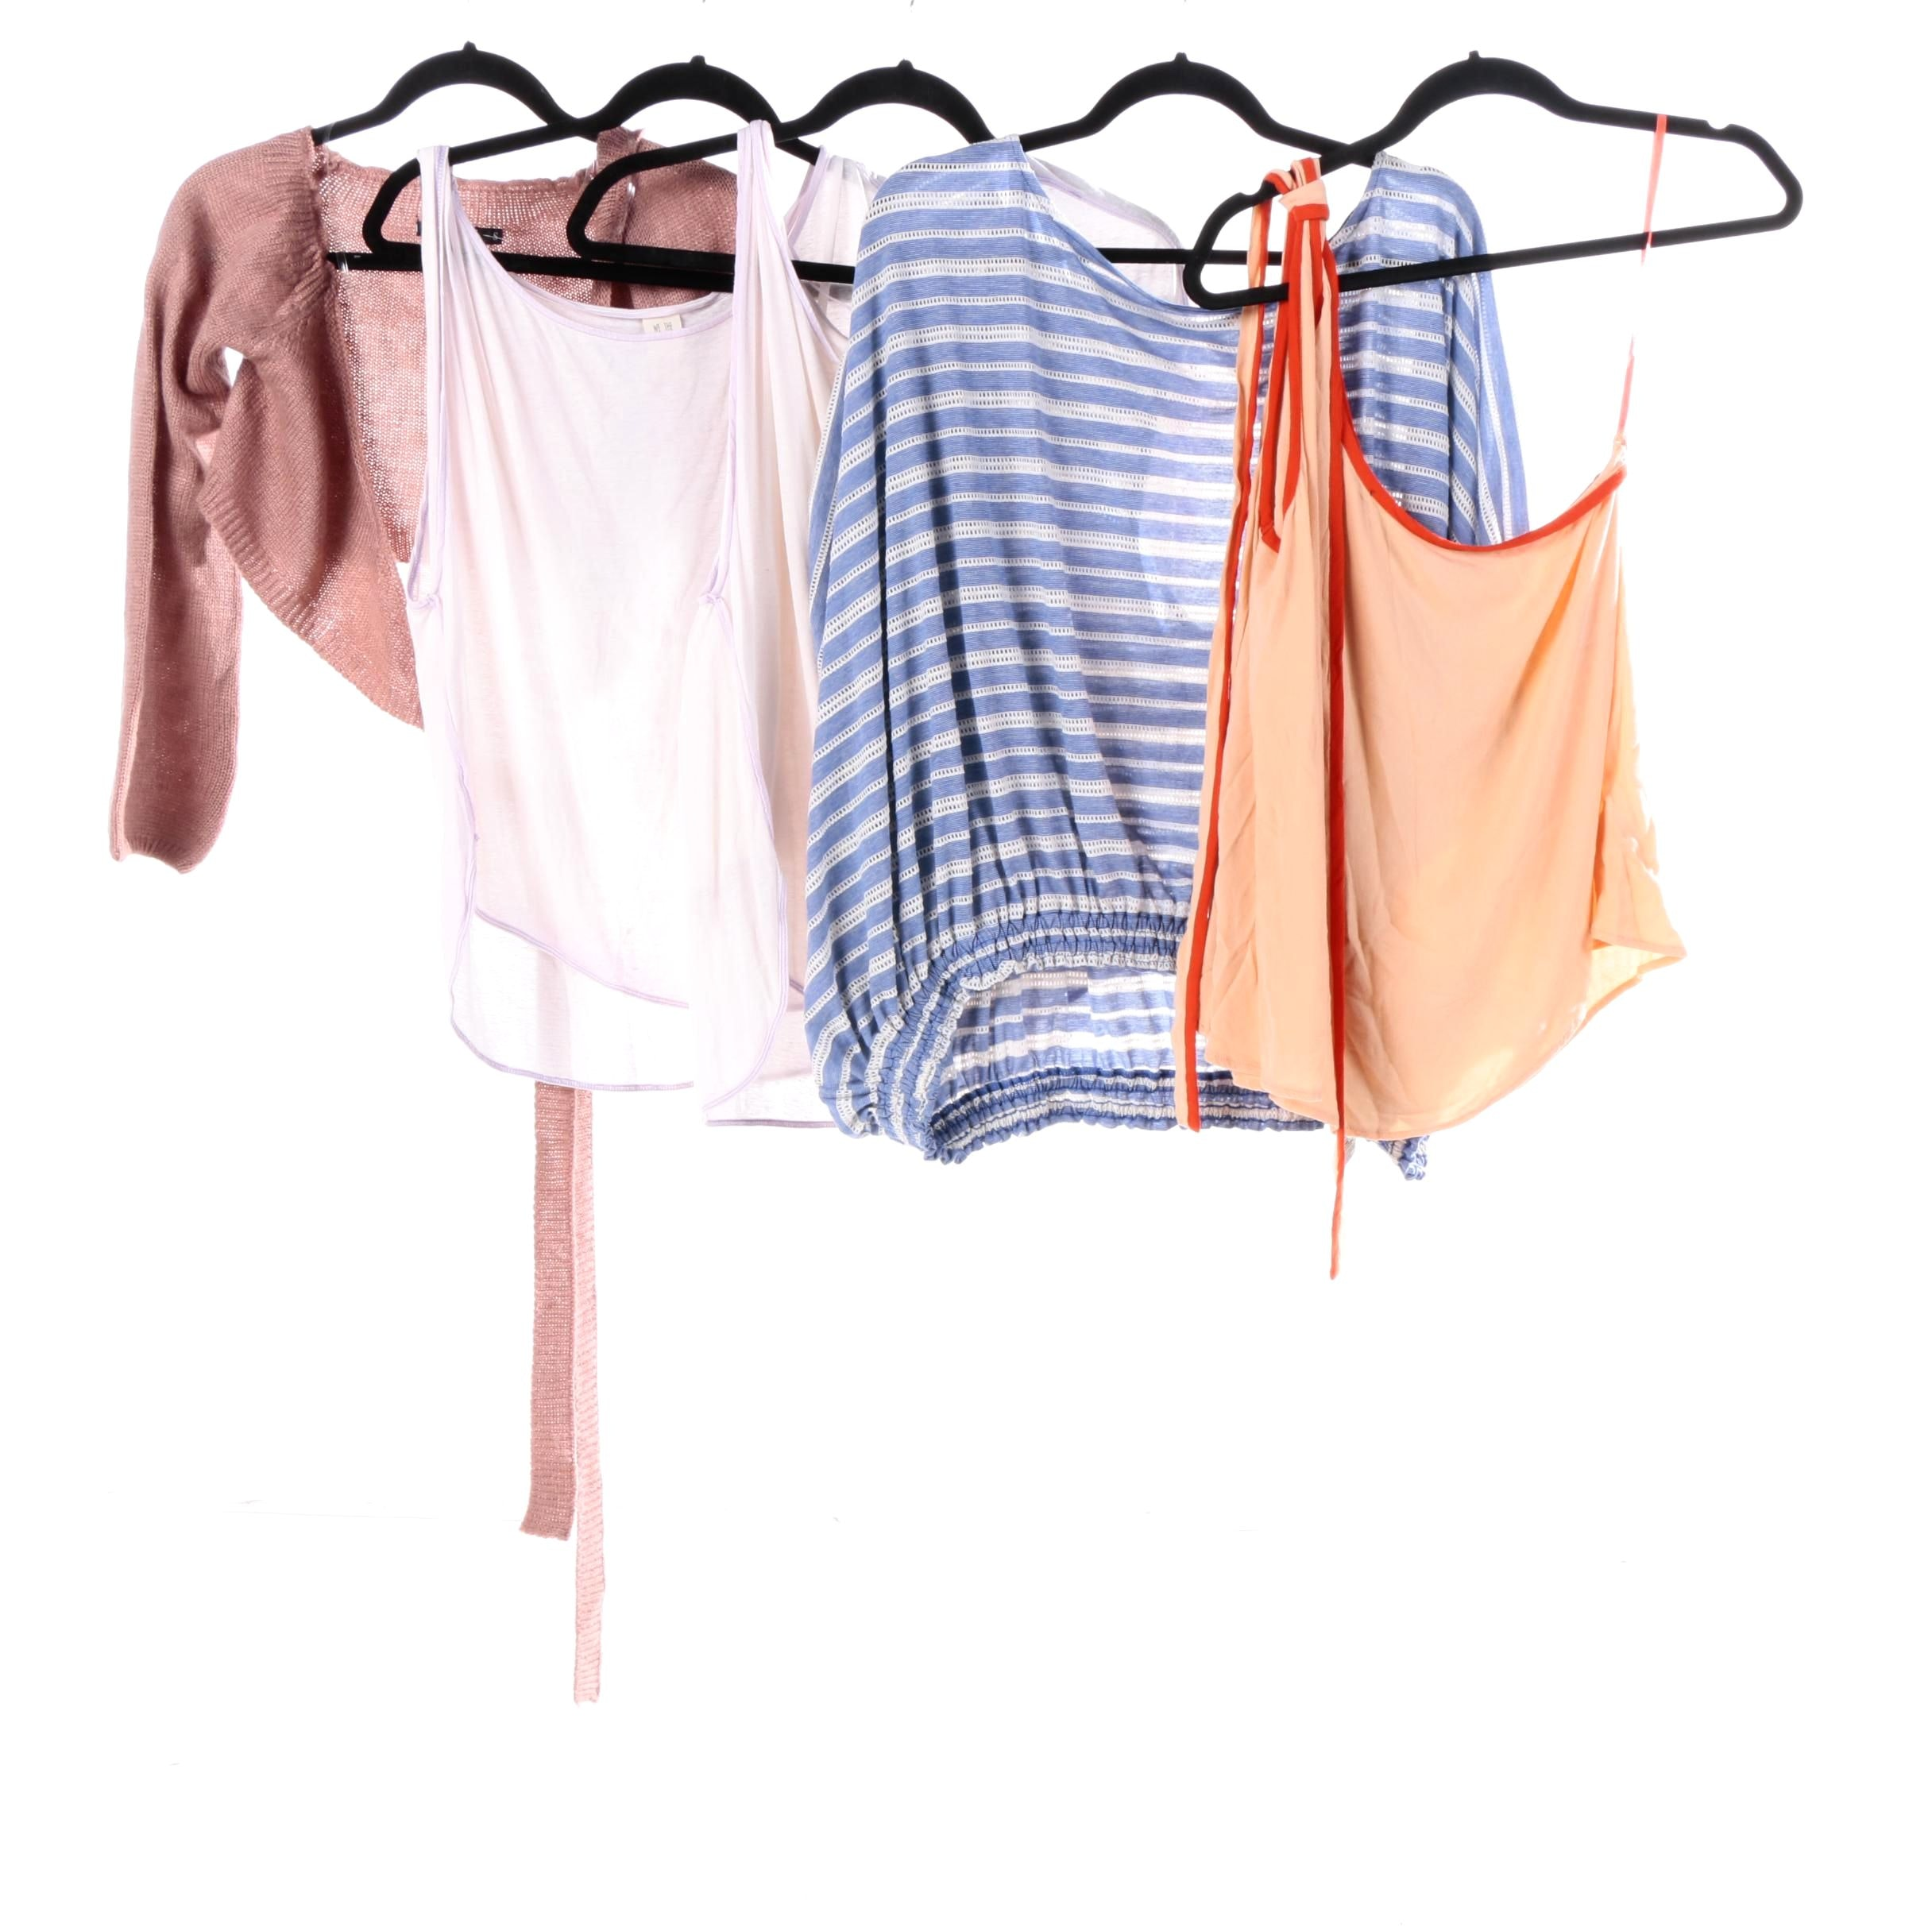 Women's Casual Summer Tops Featuring Free People